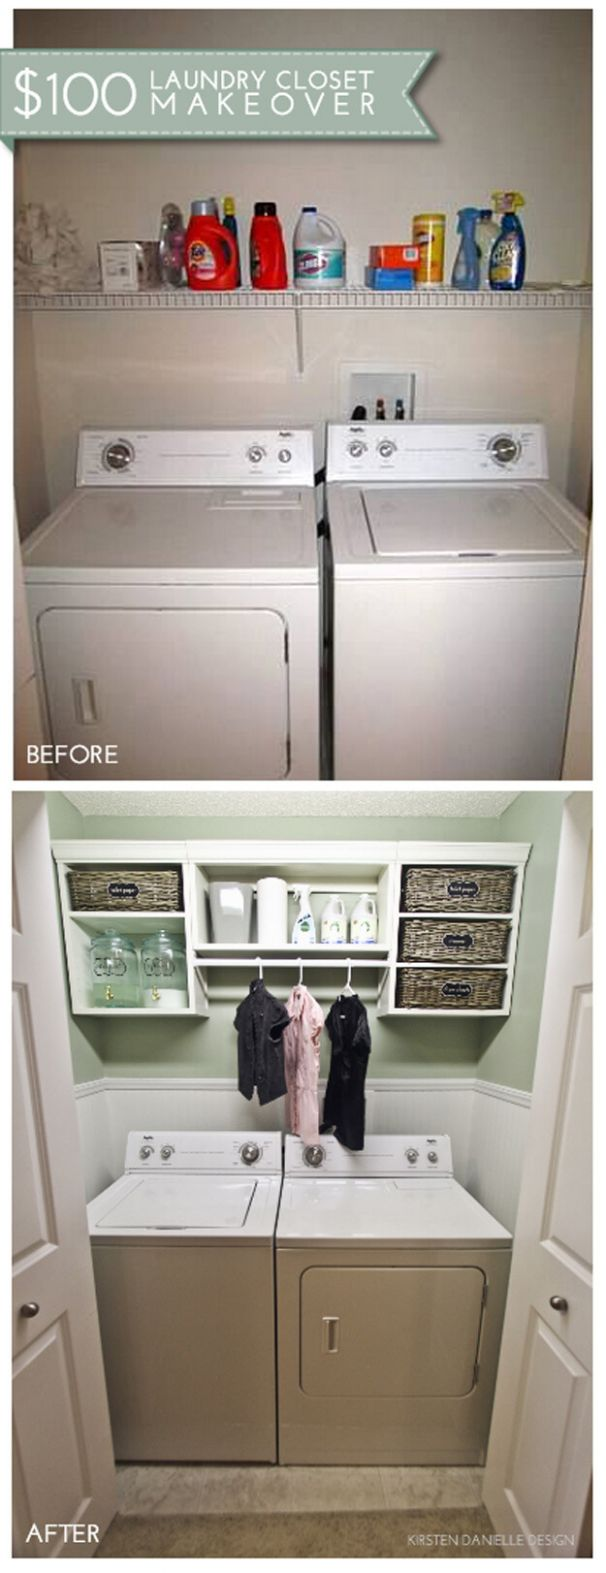 12 Best Budget Friendly Laundry Room Makeover Ideas and Designs ..